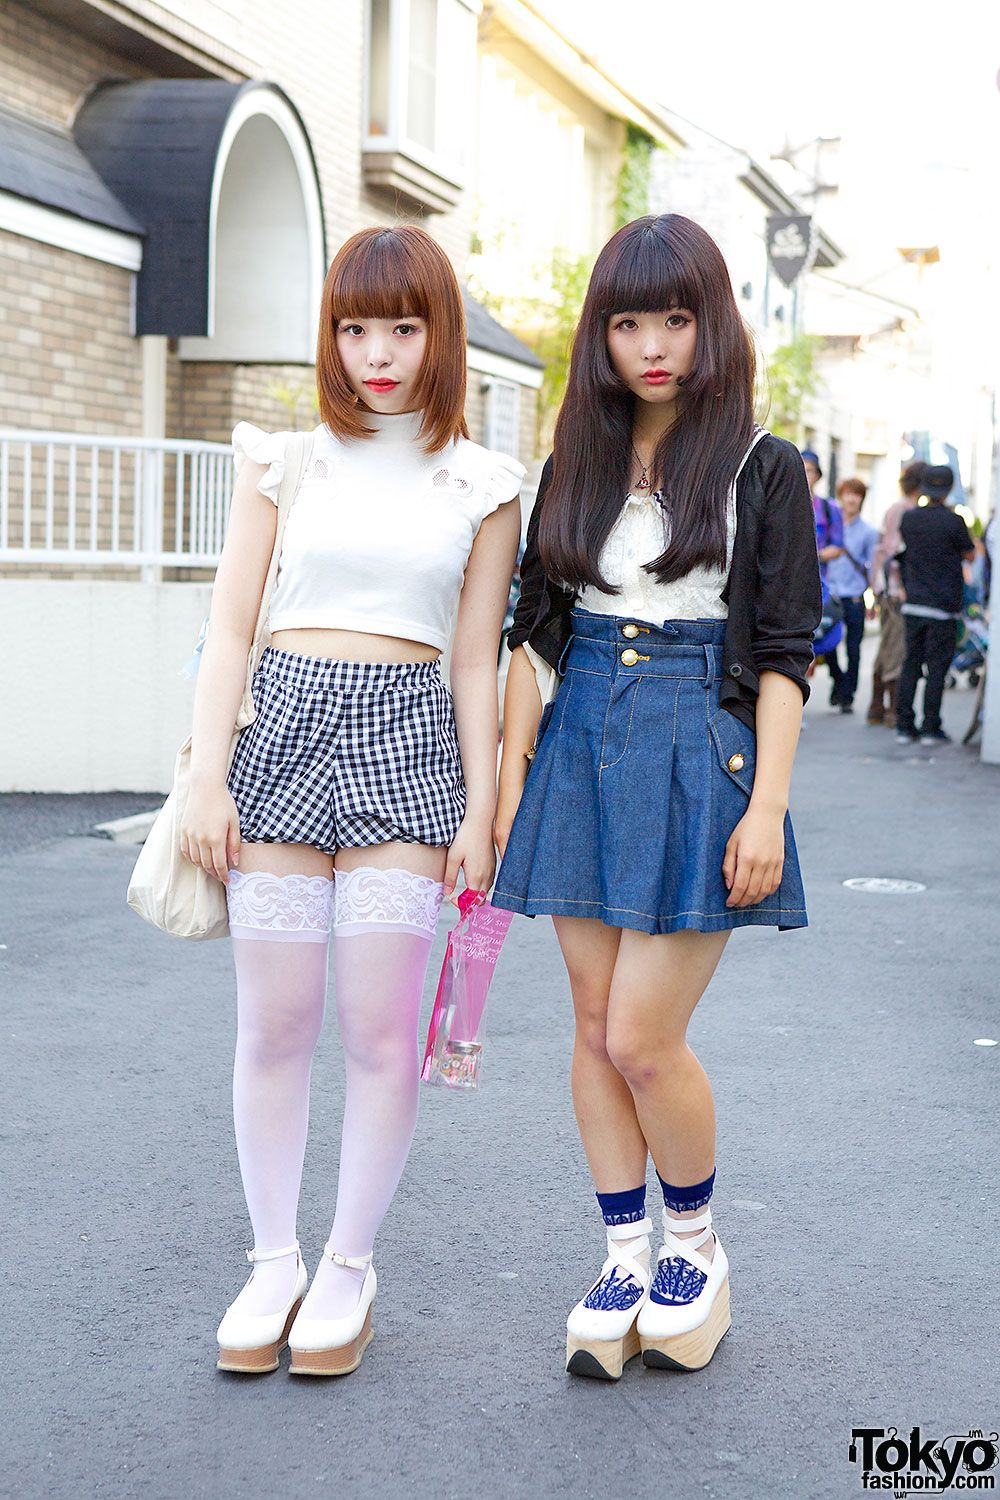 Harajuku Girls In Crop Top Amp Denim Skirt W Nile Perch